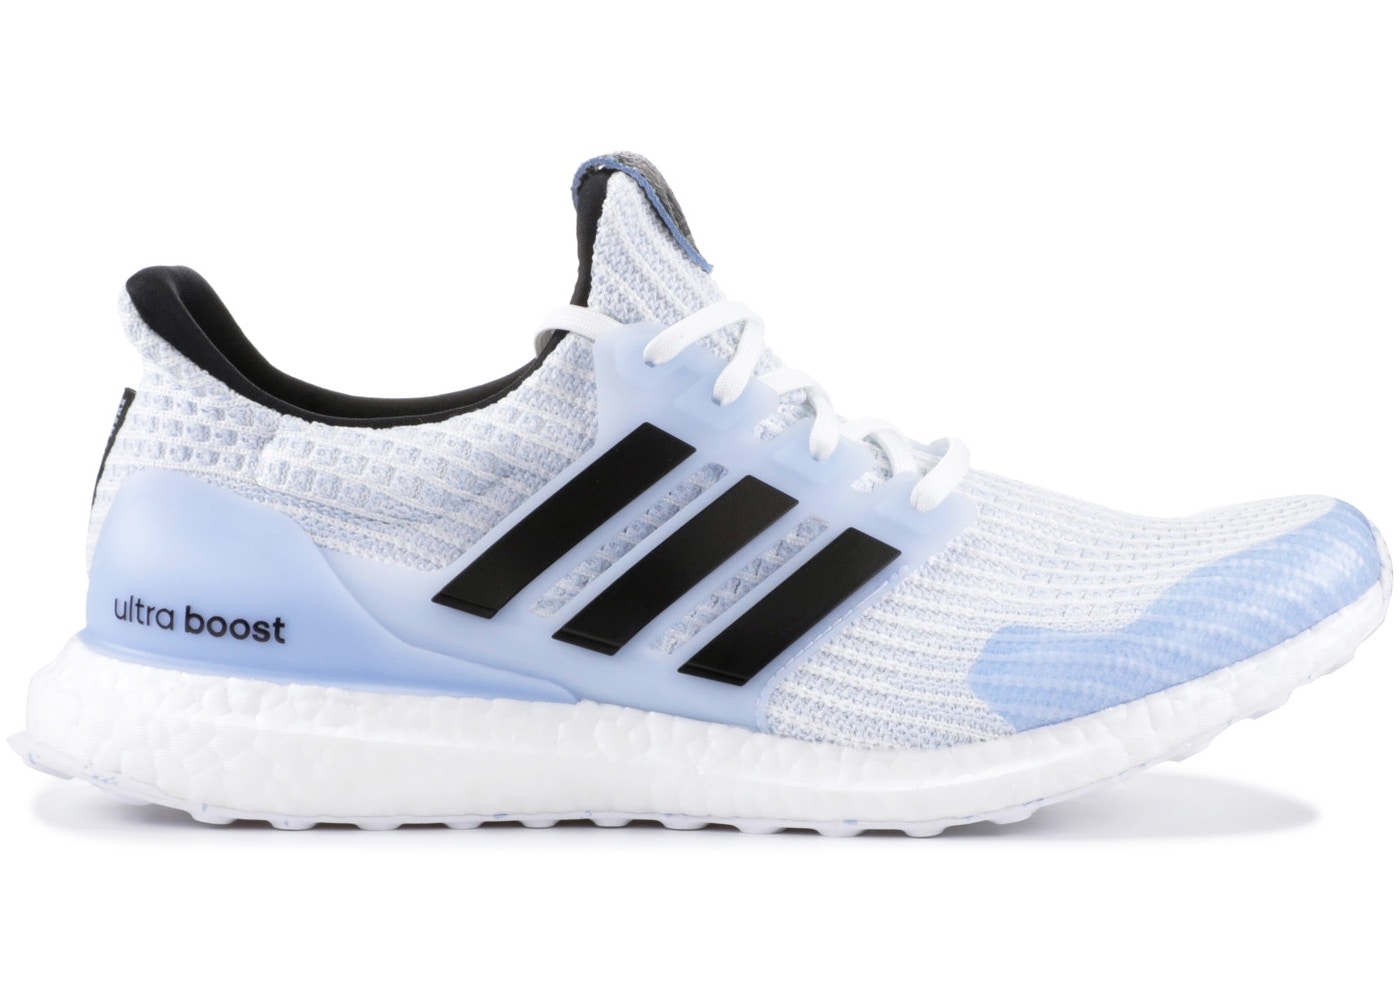 8d1811cfcbc99 Sell. or Ask. Size  16. View All Bids. adidas Ultra Boost 4.0 Game of  Thrones White Walkers